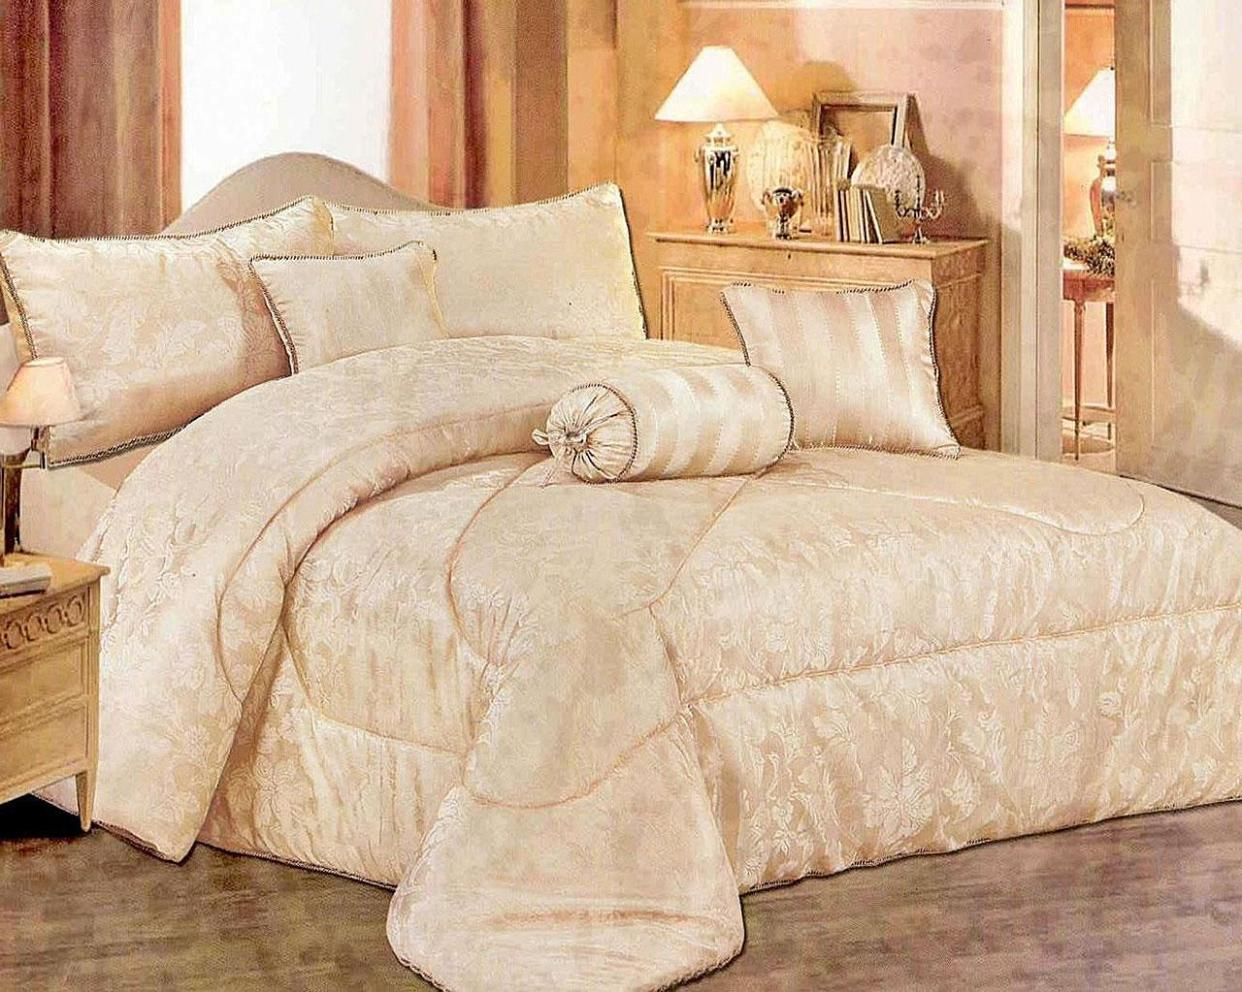 Image of: Quilt Bedspread Sets